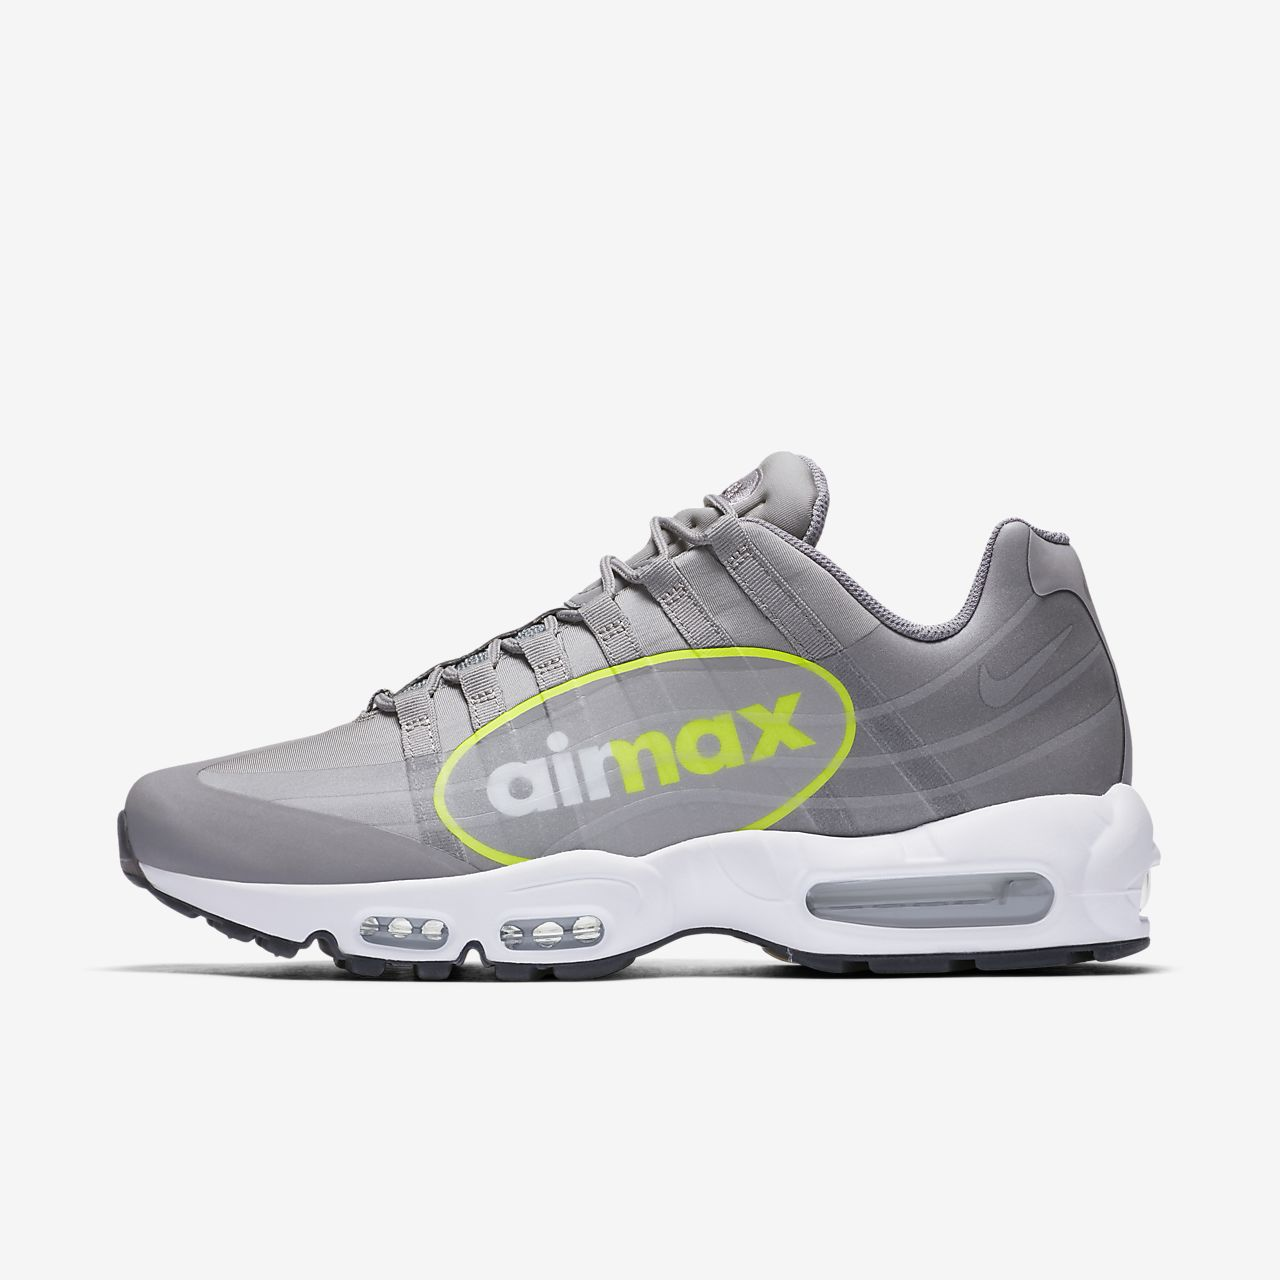 nike air max 90 id men's shoe nz